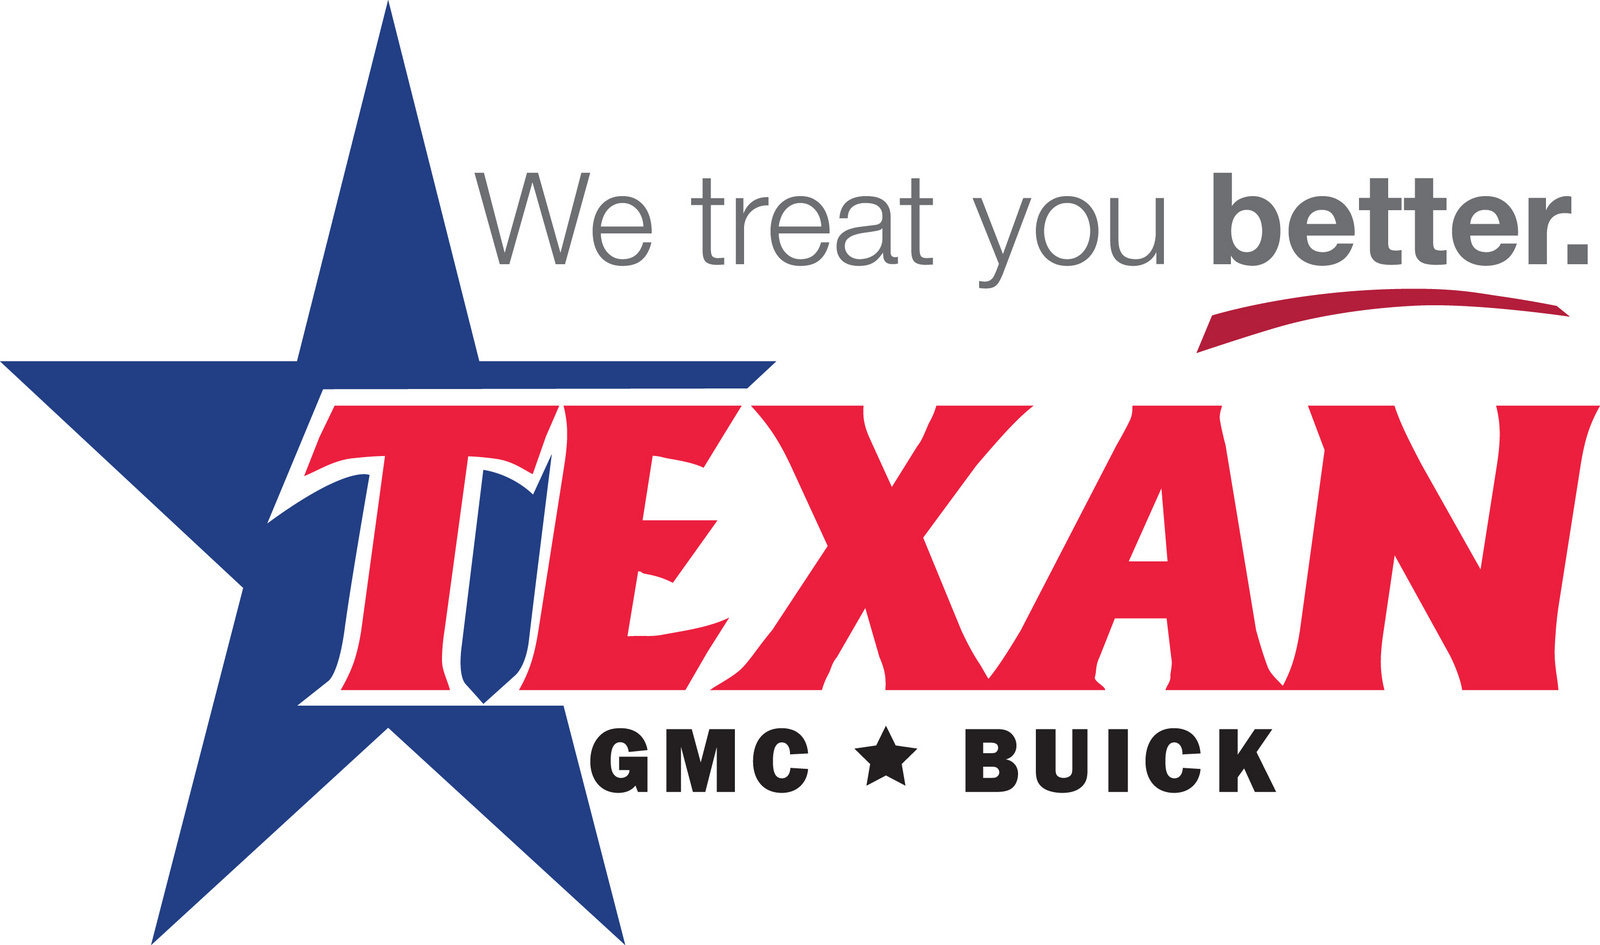 sterling freeway beautiful bldg tlx gmc houston d of buick mccall dealership tx acura southwest dealers mcall